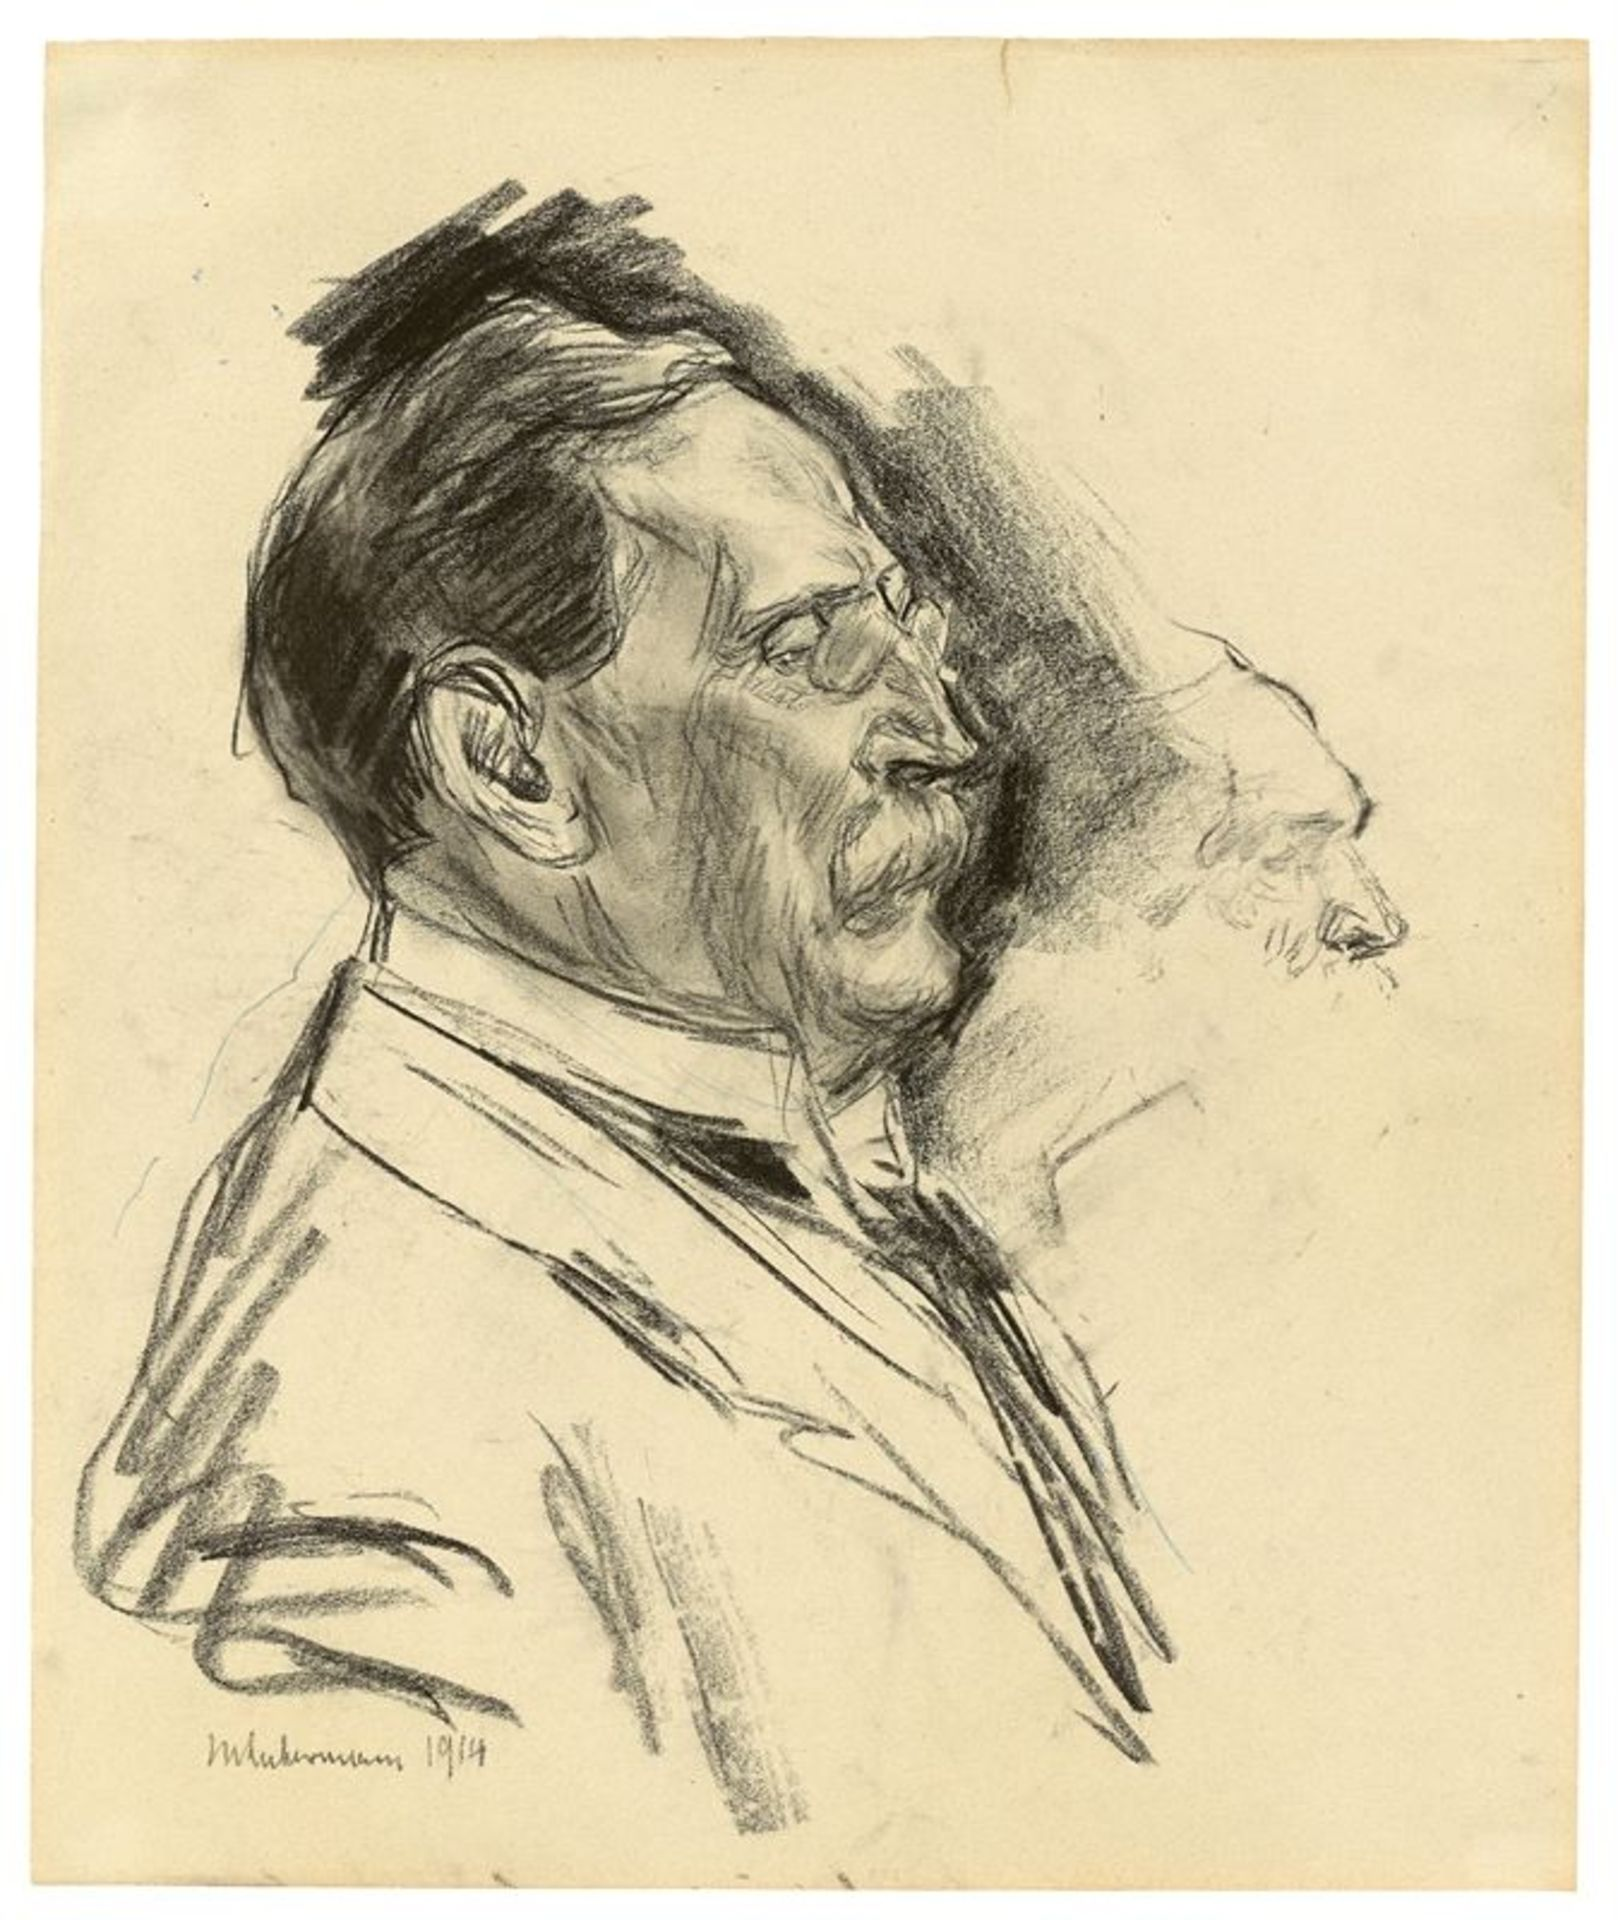 Los 115 - Max Liebermann (1847 – Berlin – 1935)